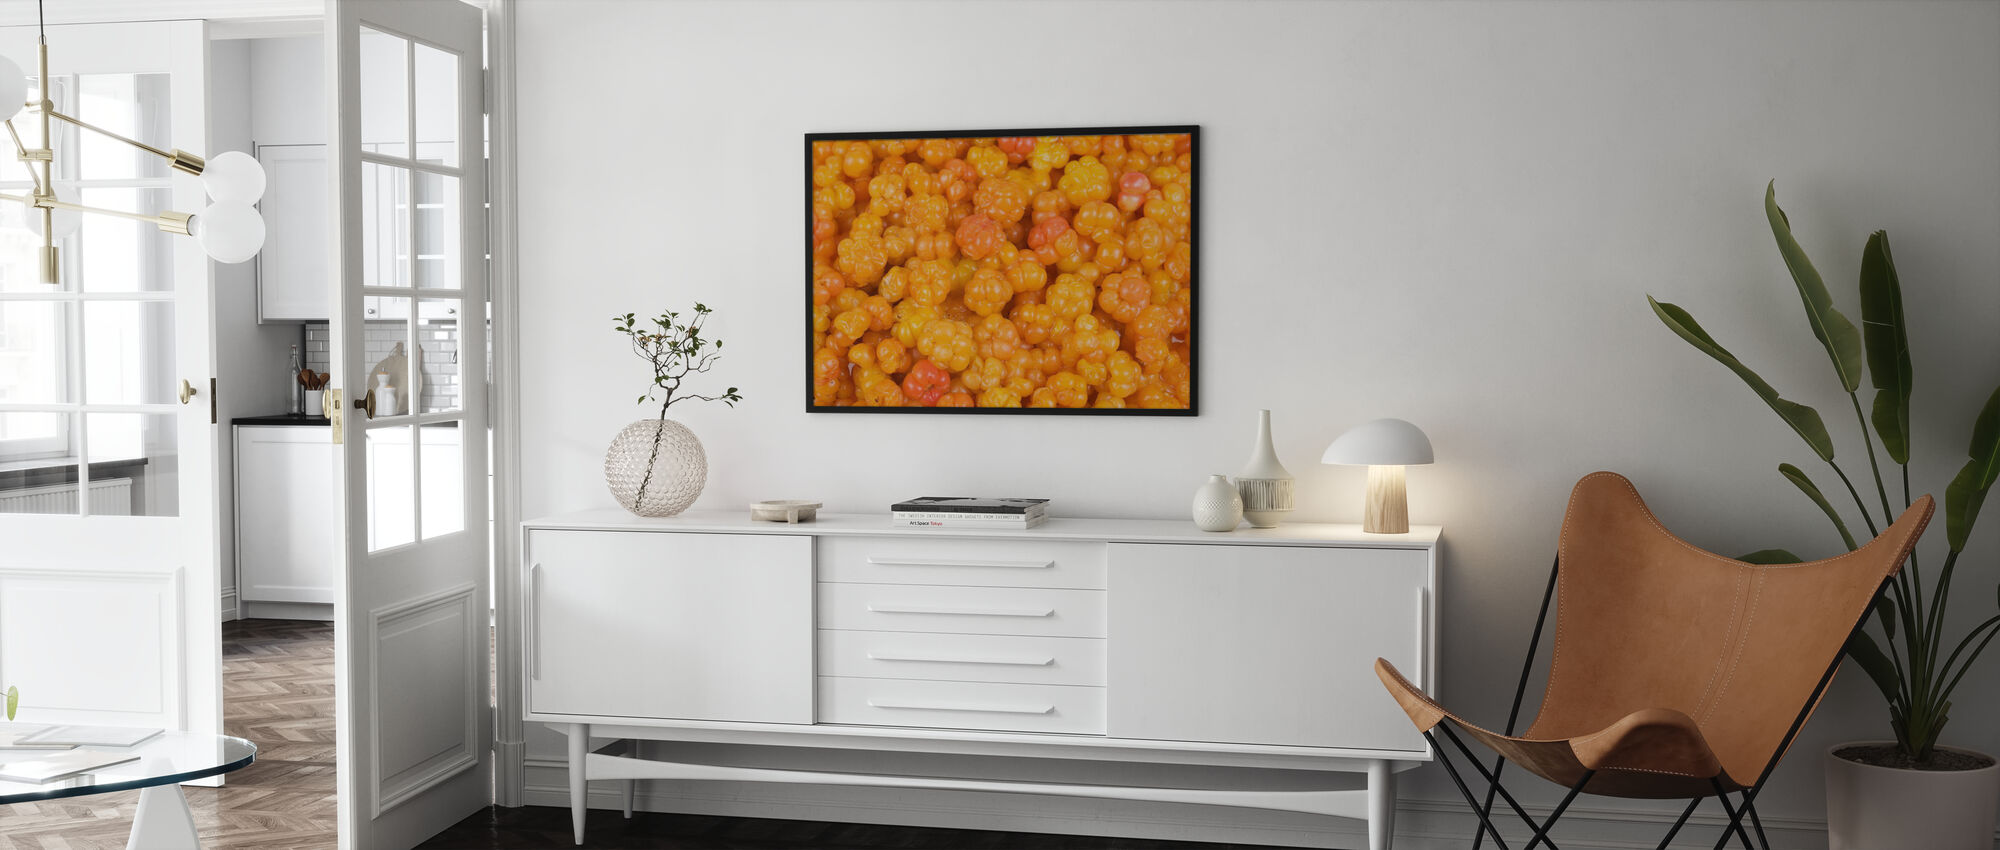 Cloudberry - Poster - Living Room